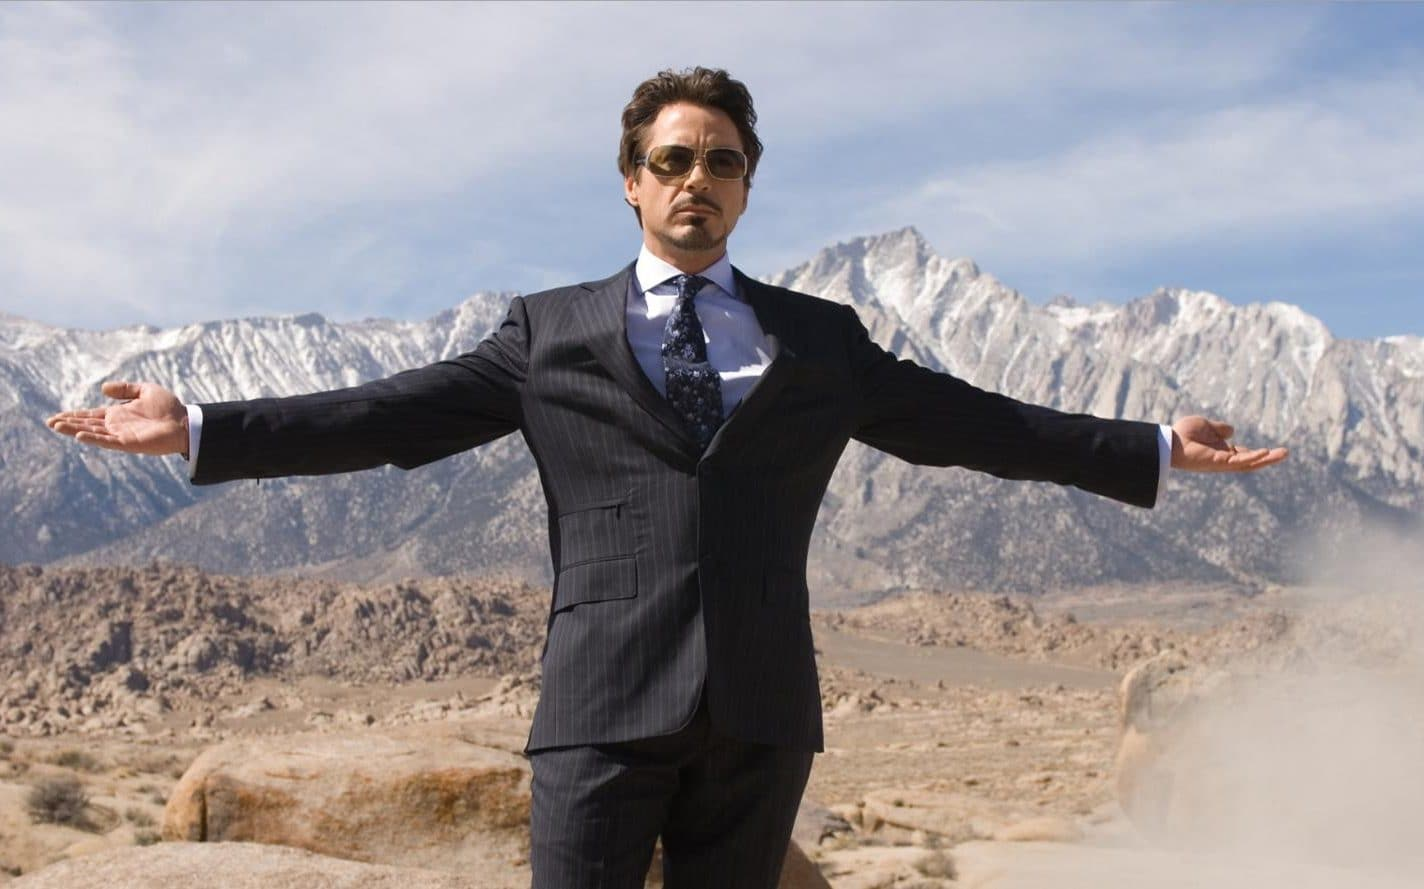 Marvel Had Doubts About Casting Robert Downey Jr. for Iron Man